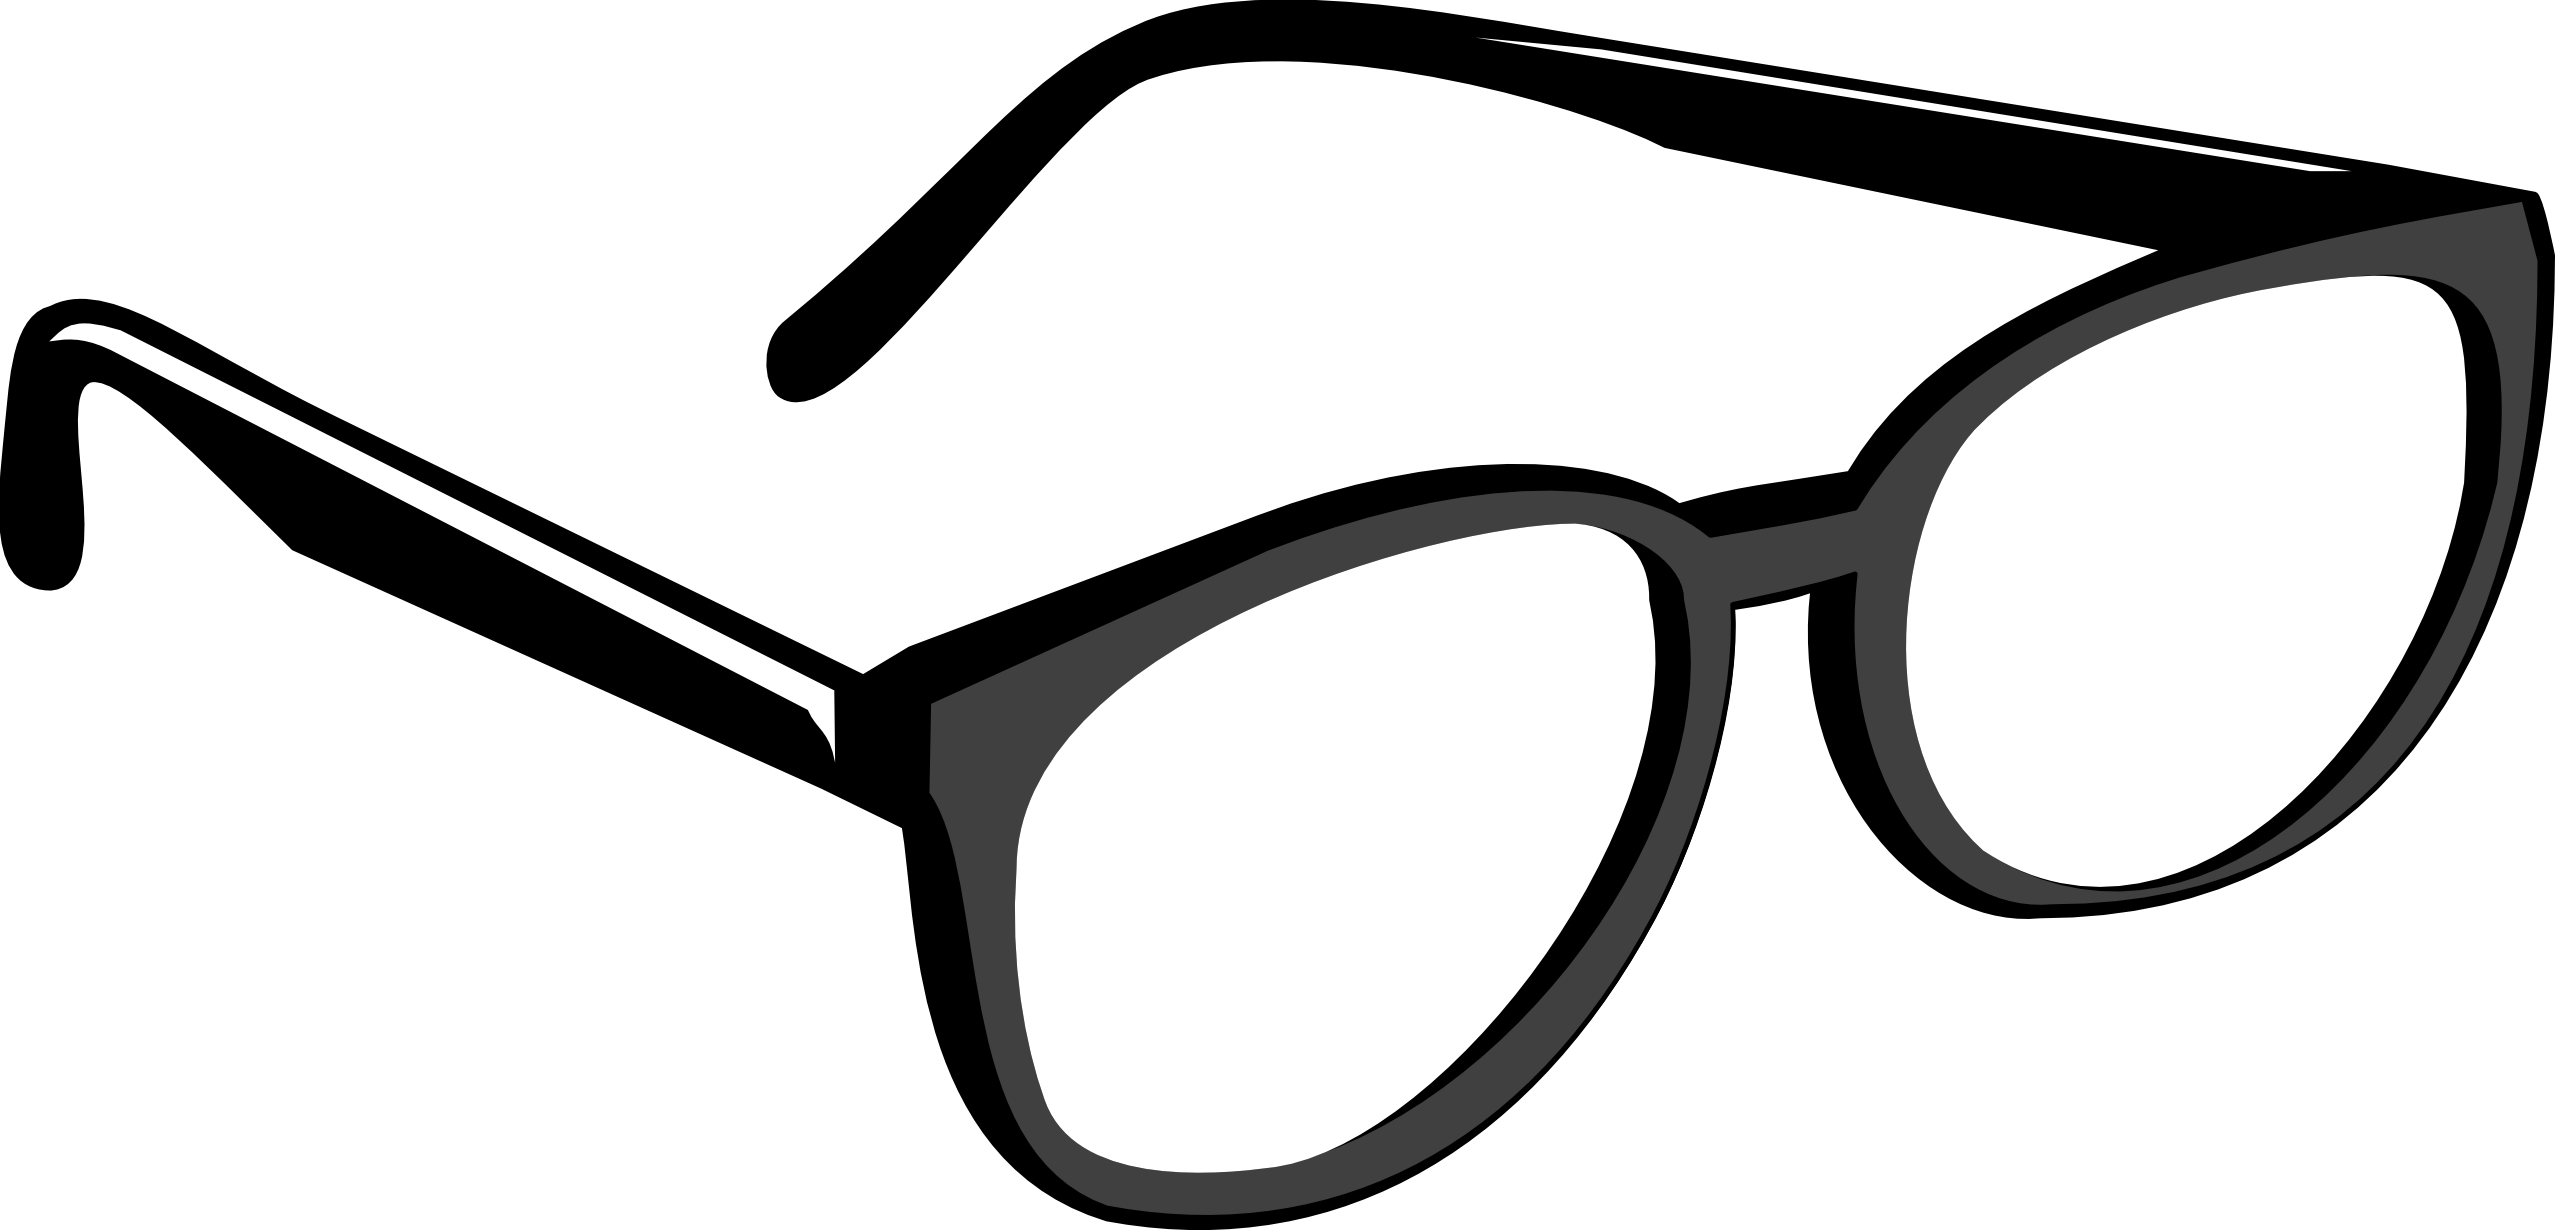 Eyeglasses clip art free clipart images 8